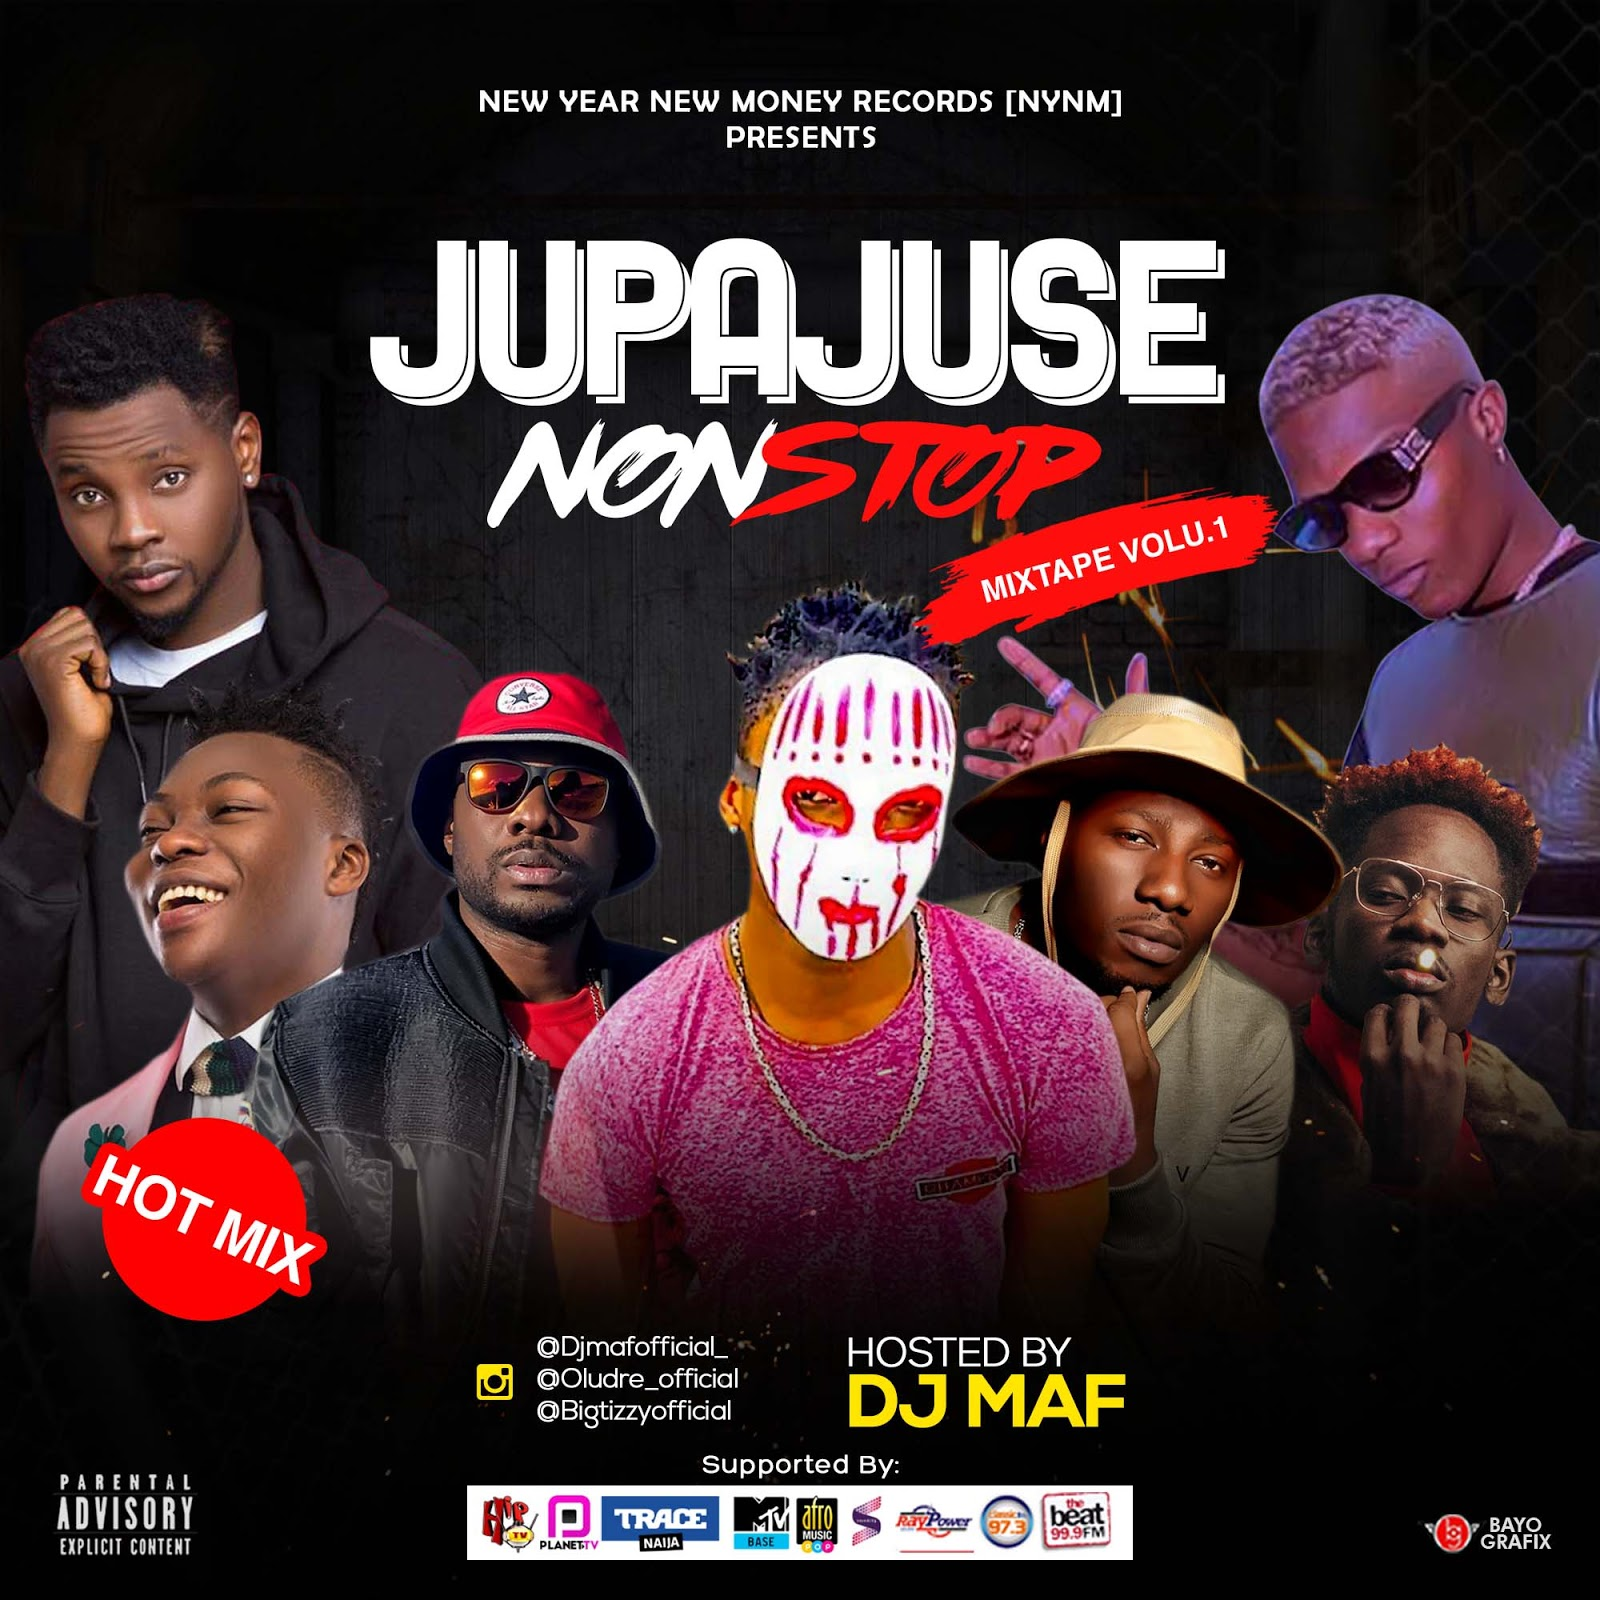 Download Fresh Mixtape: Jupa Juse Non Stop Mix  Vol 1 Hosted By